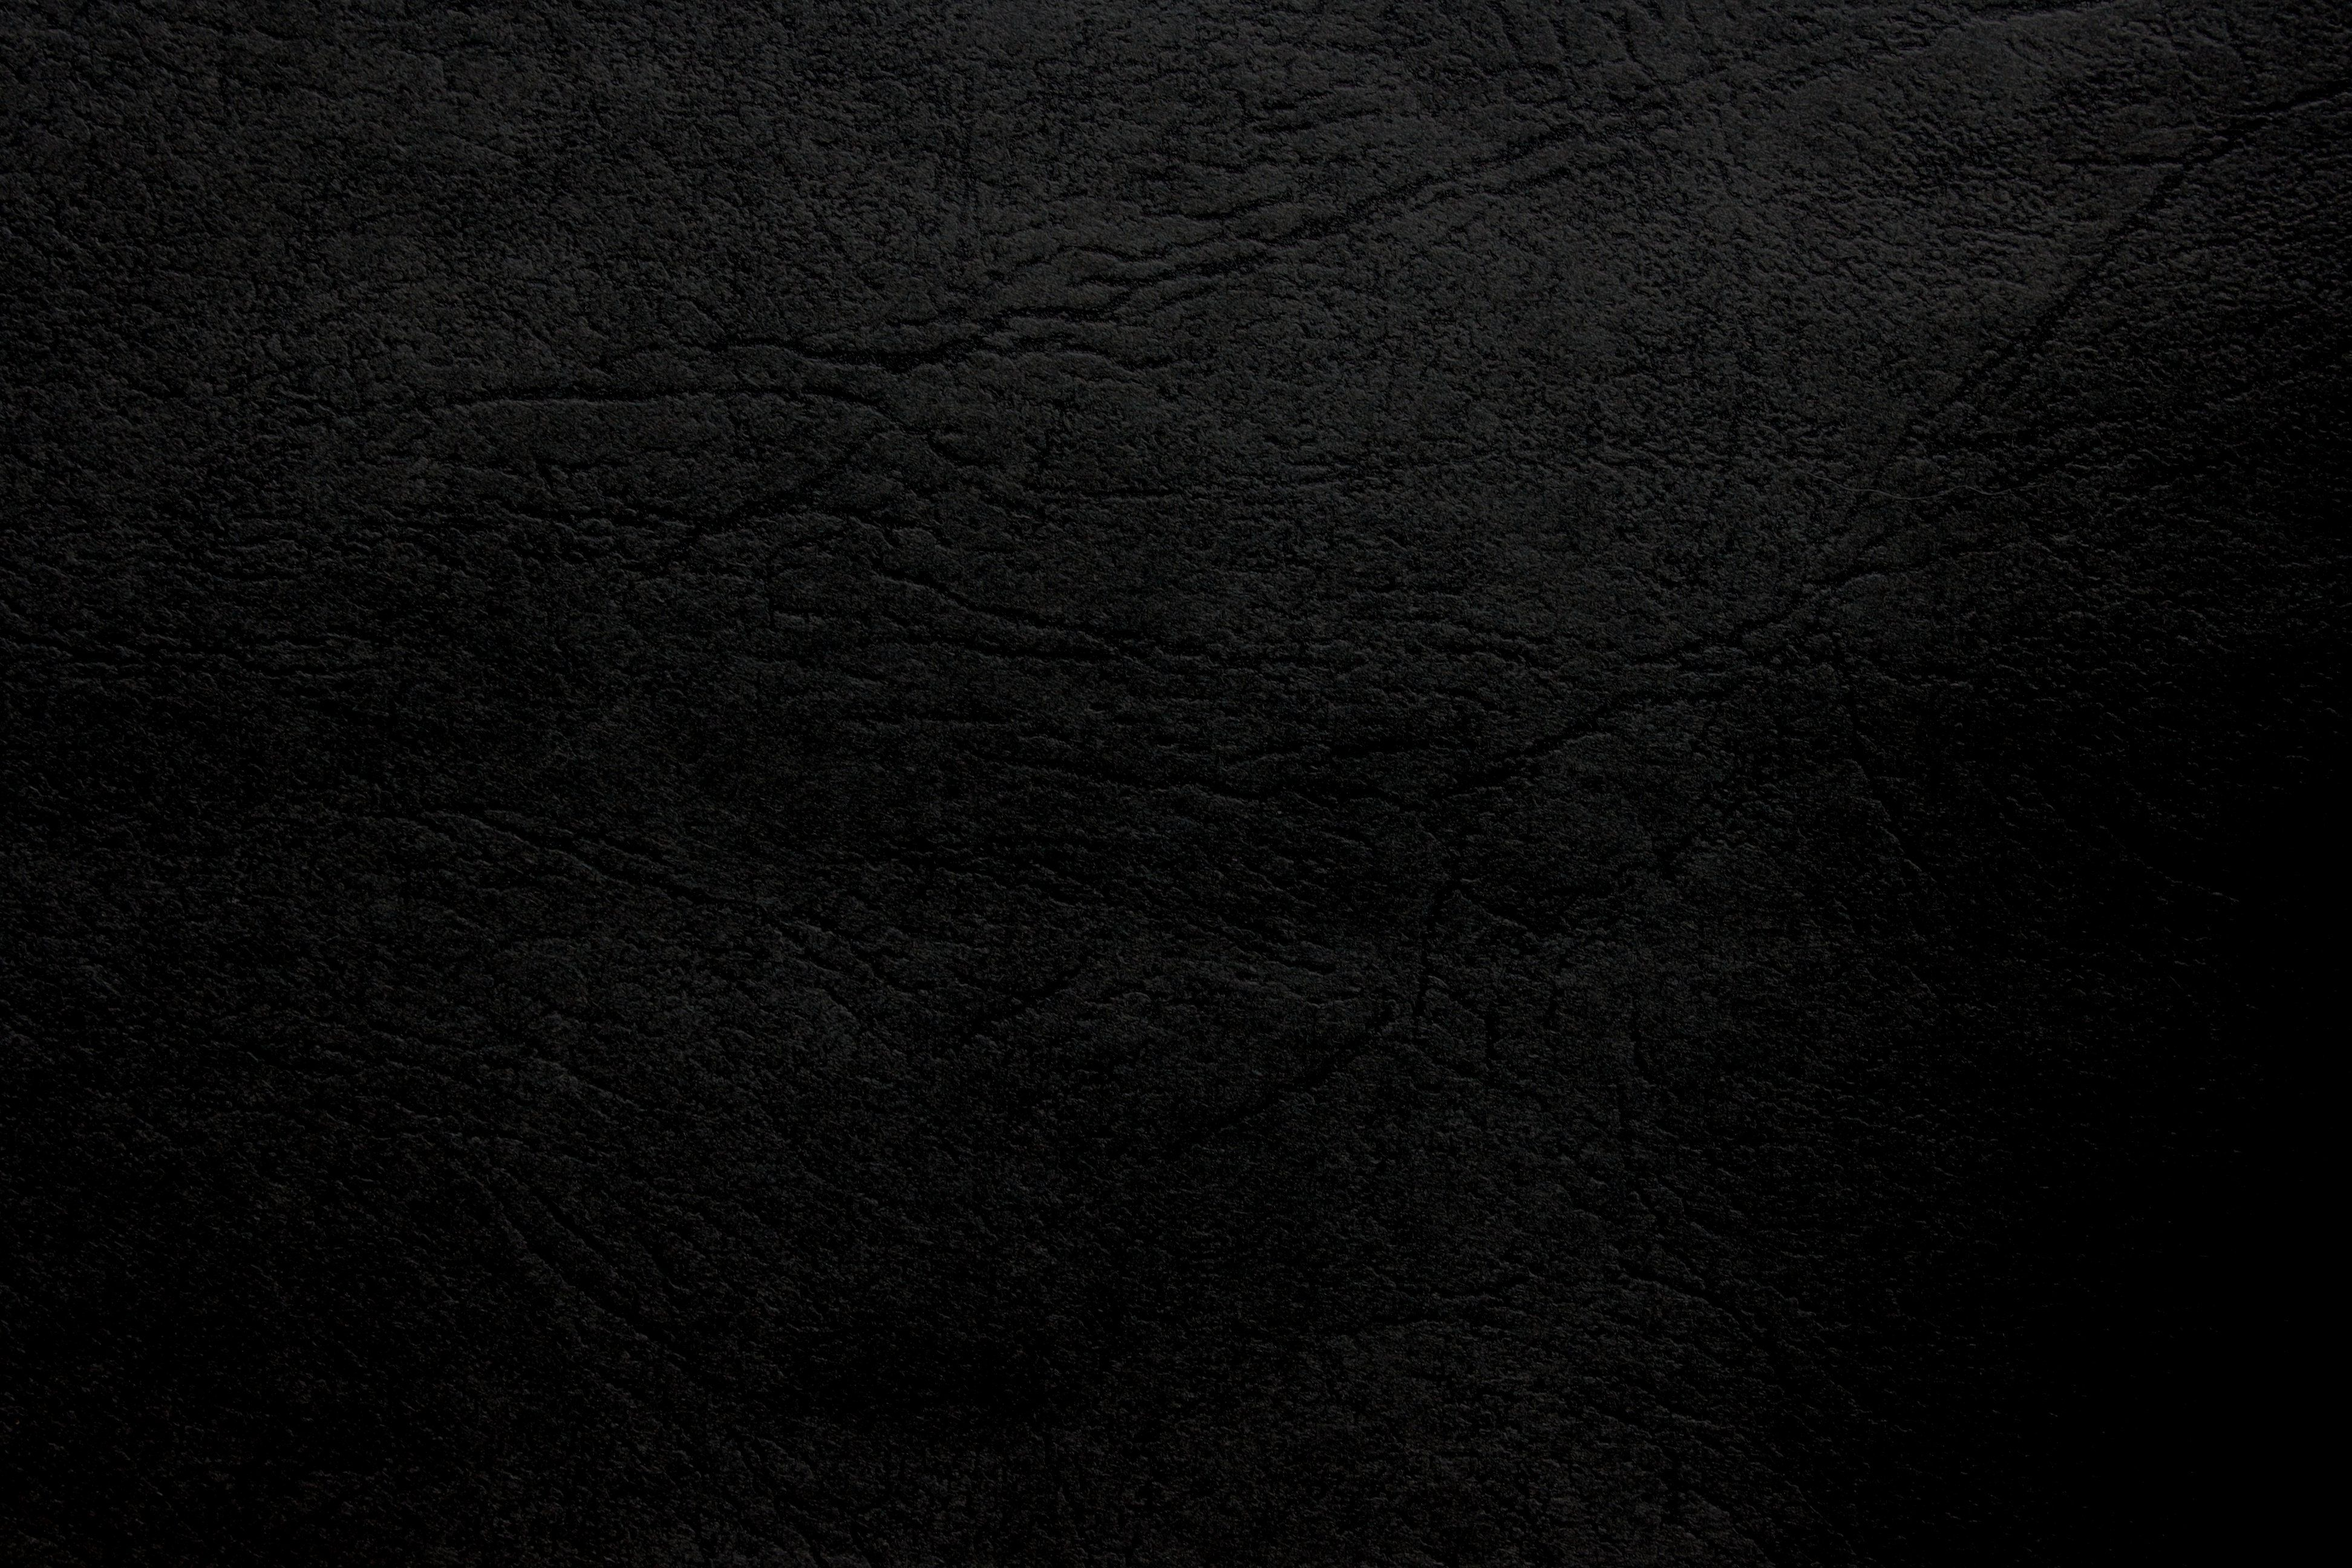 Pink fabric texture free high resolution photo dimensions 3888 - Black Leather Black Leather Texture Free High Resolution Photo Dimensions 3888